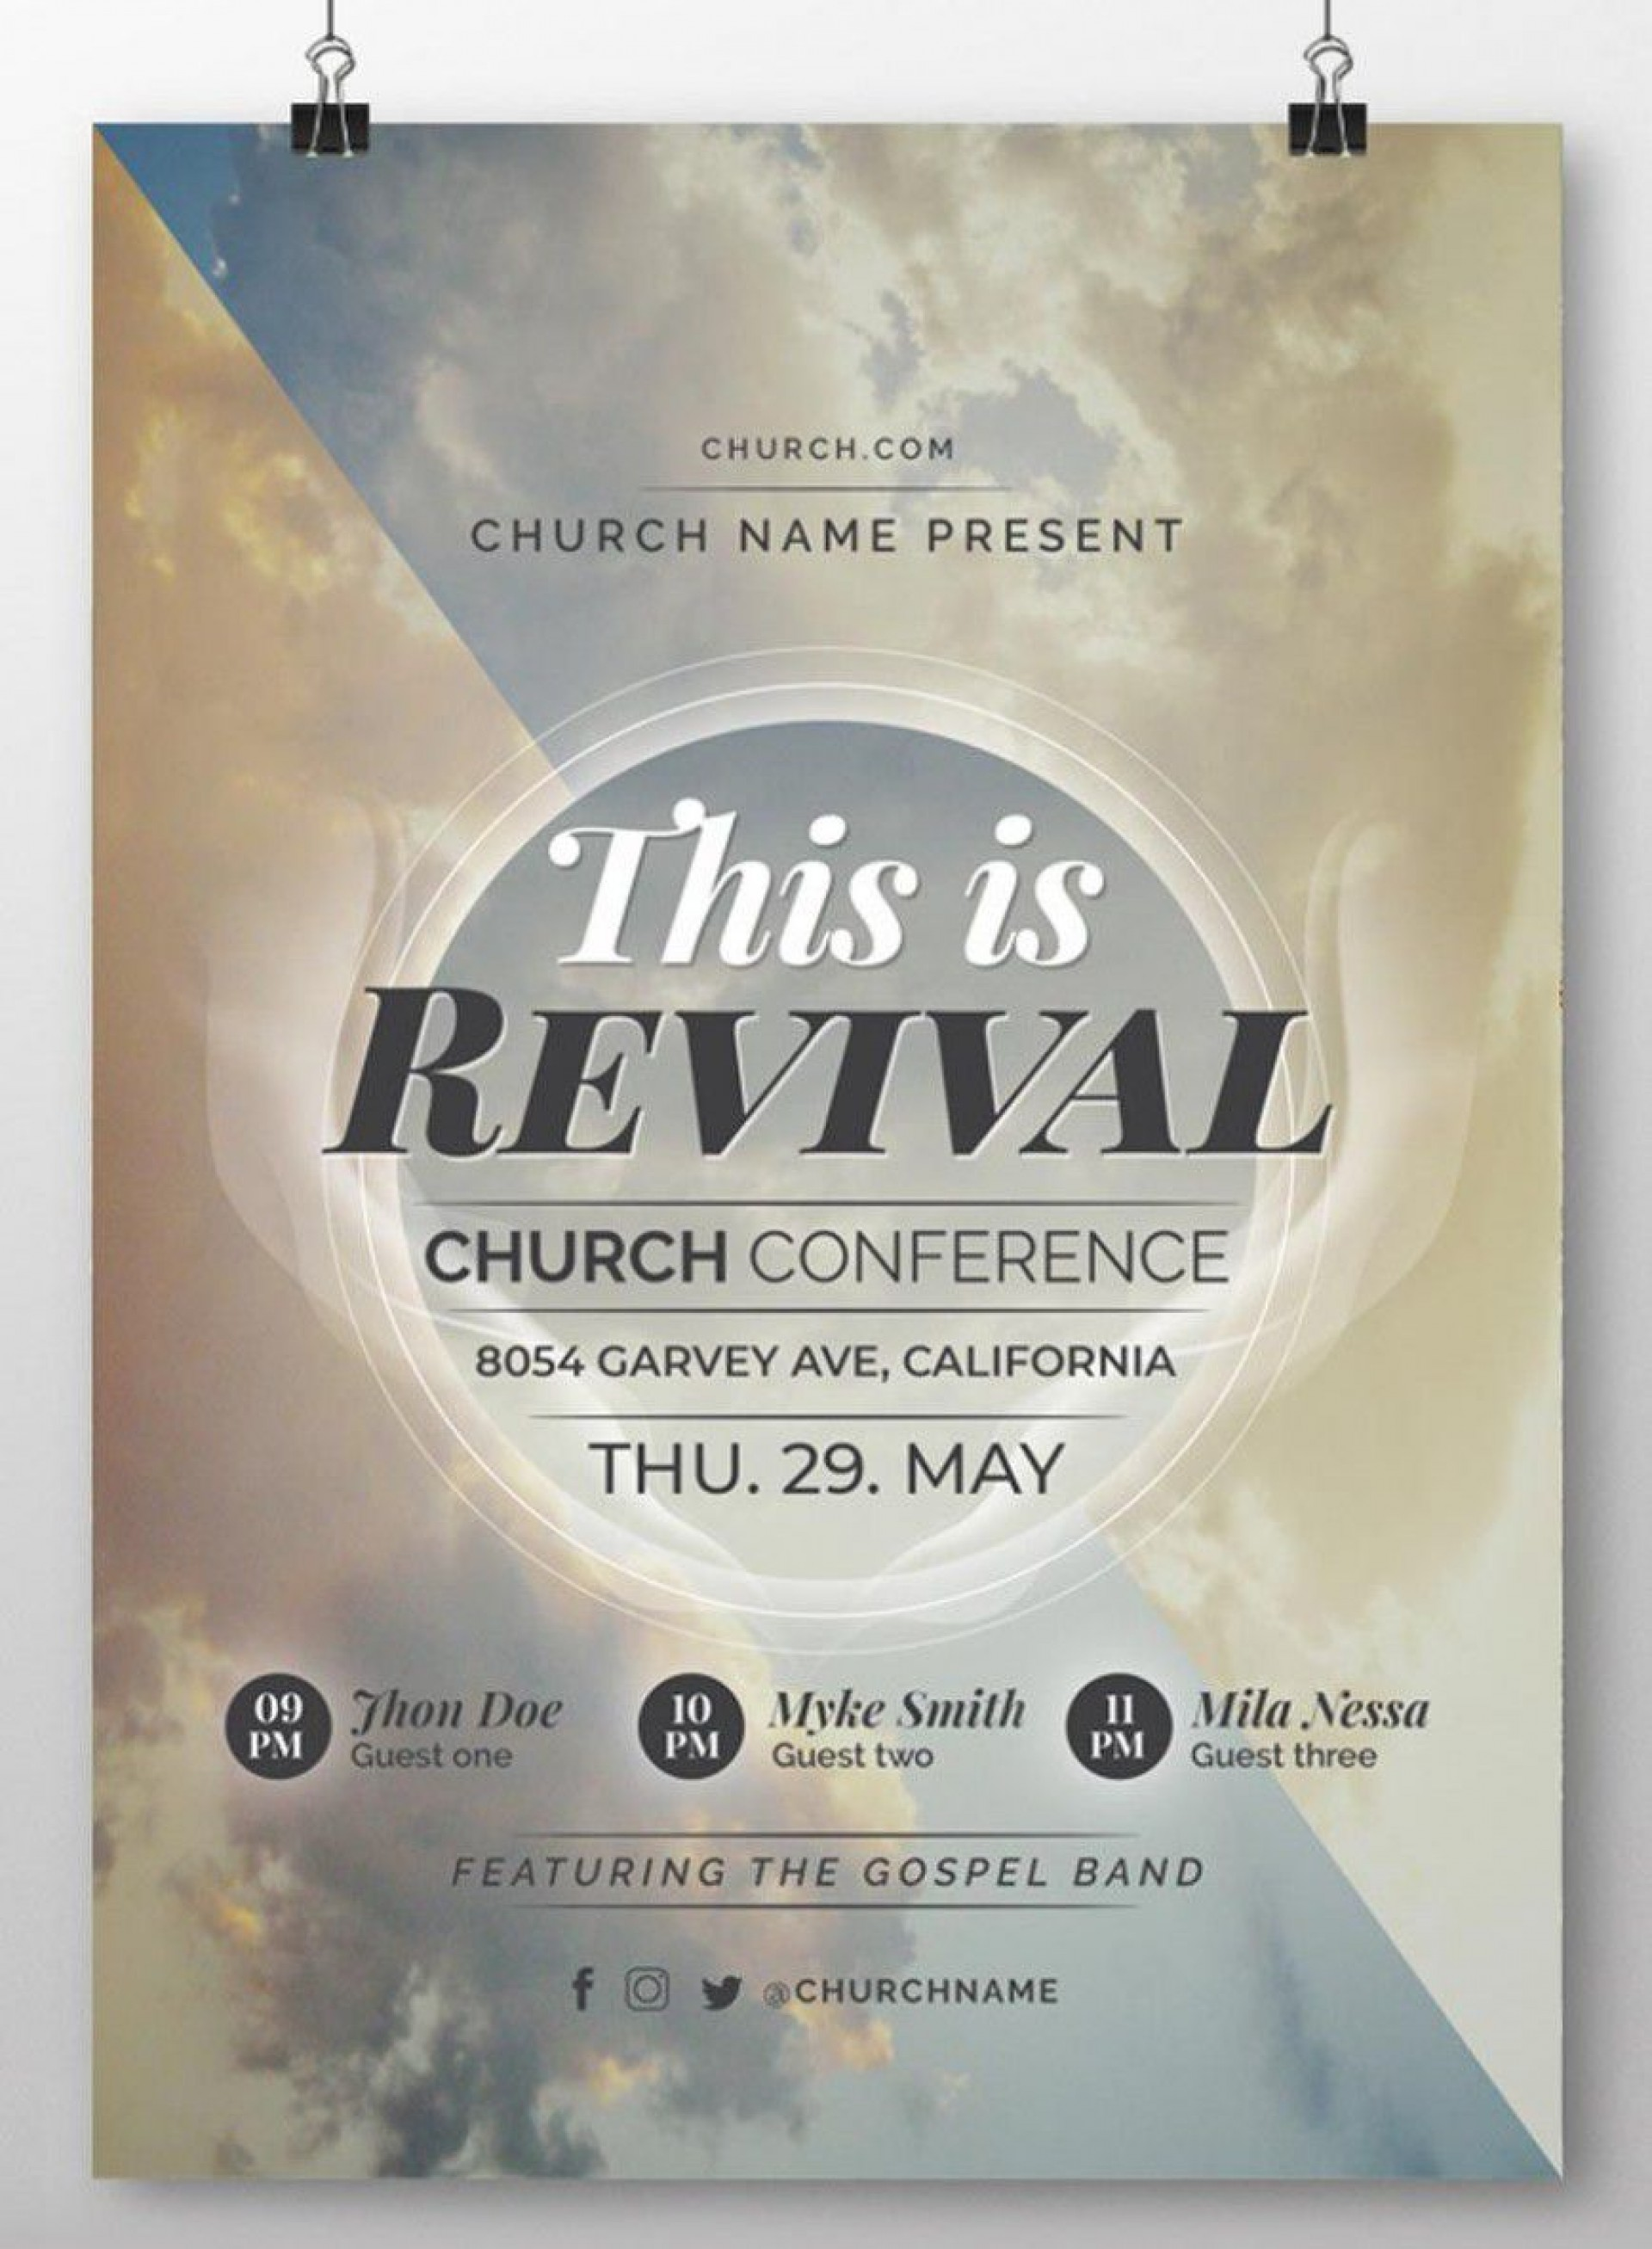 001 Dreaded Church Flyer Template Free Photo  Easter Anniversary Conference Psd1920